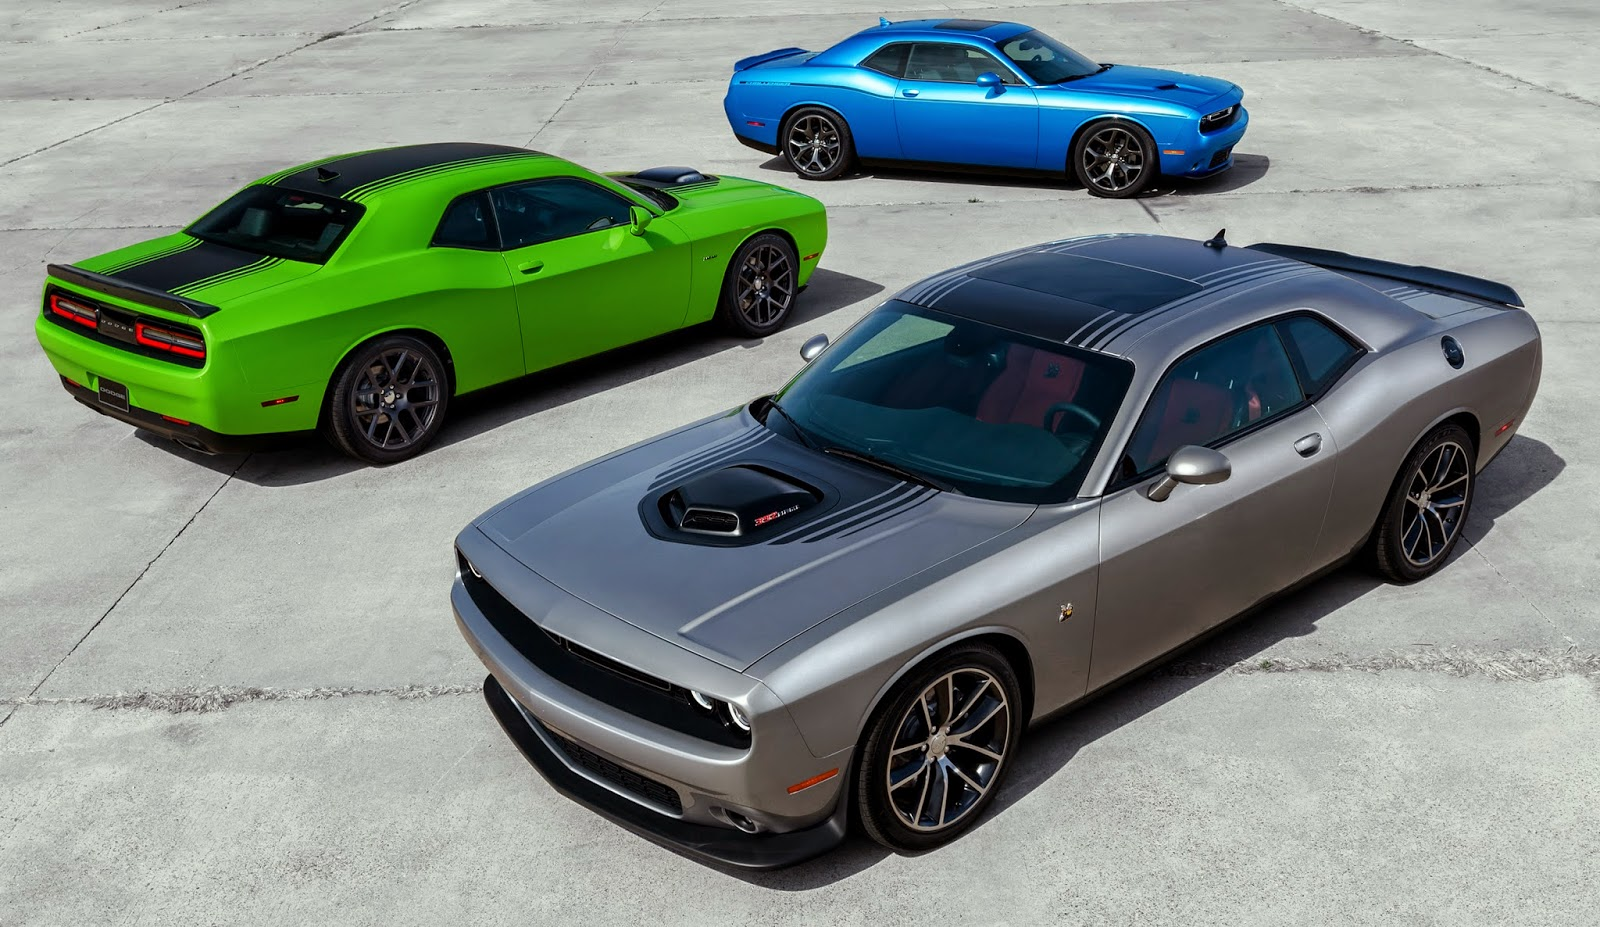 New 2015 Dodge Challenger Now Offers 485 Best In Class Horsepower, All New  R/T Scat Pack And 392 HEMI® Scat Pack Shaker Models, All New Interior And  ...